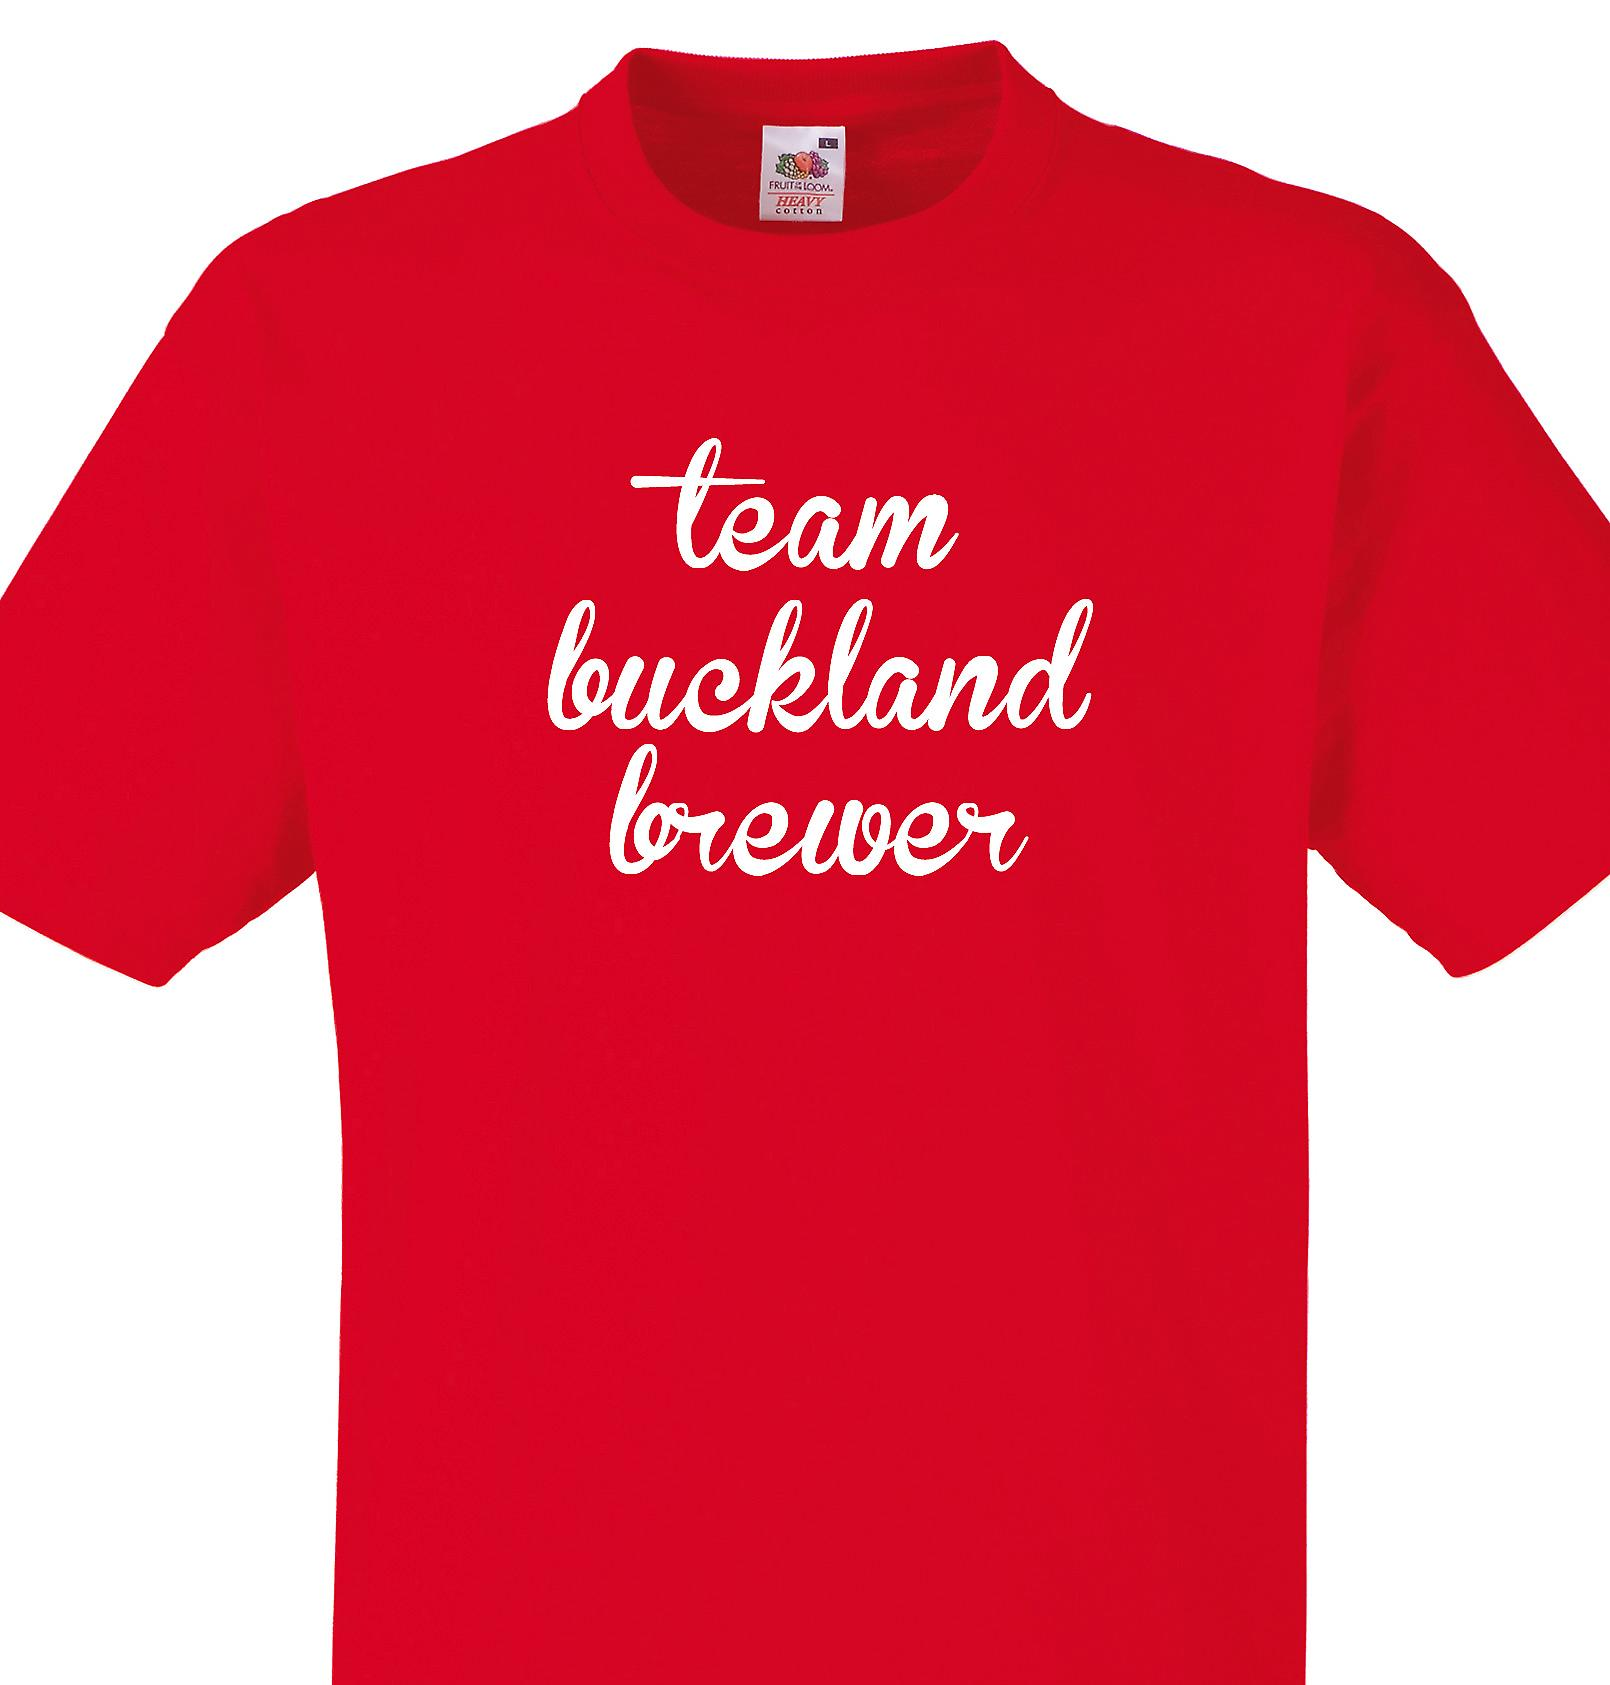 Team Buckland brewer Red T shirt